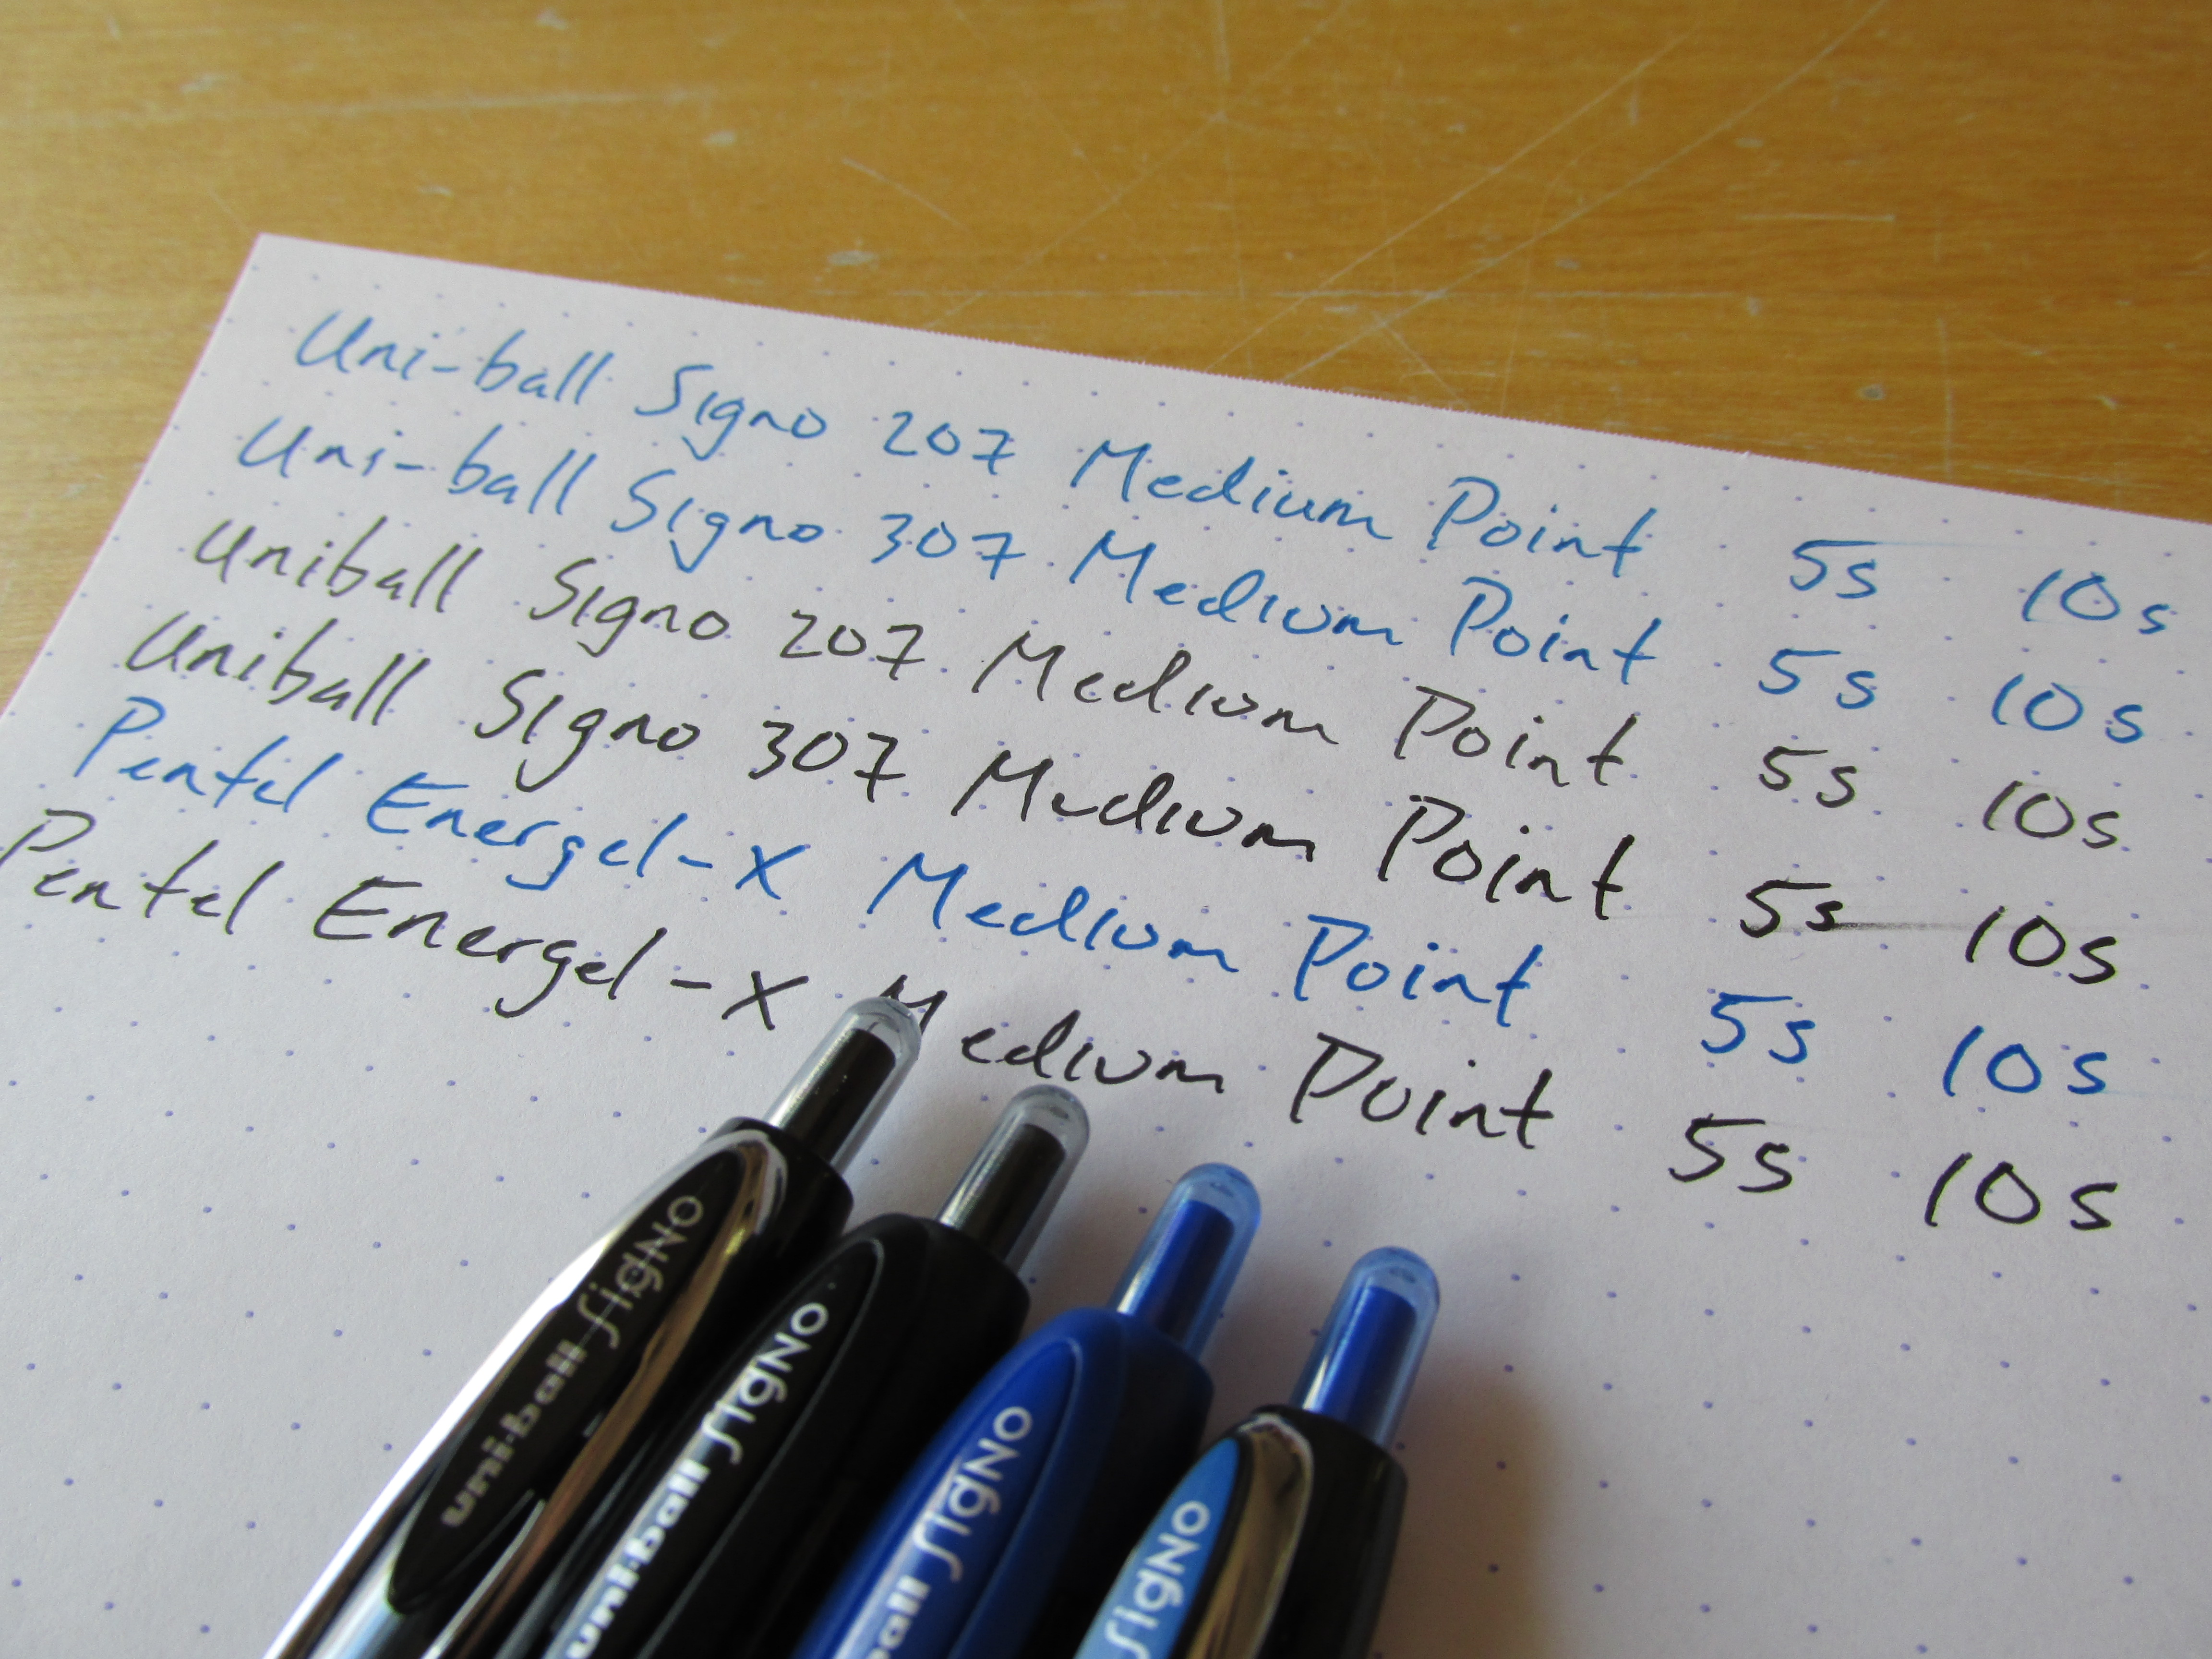 Todd Page 4 That One Pen Circuit Board Rollerball And Ink Nerd Gift Uniballsigno307a